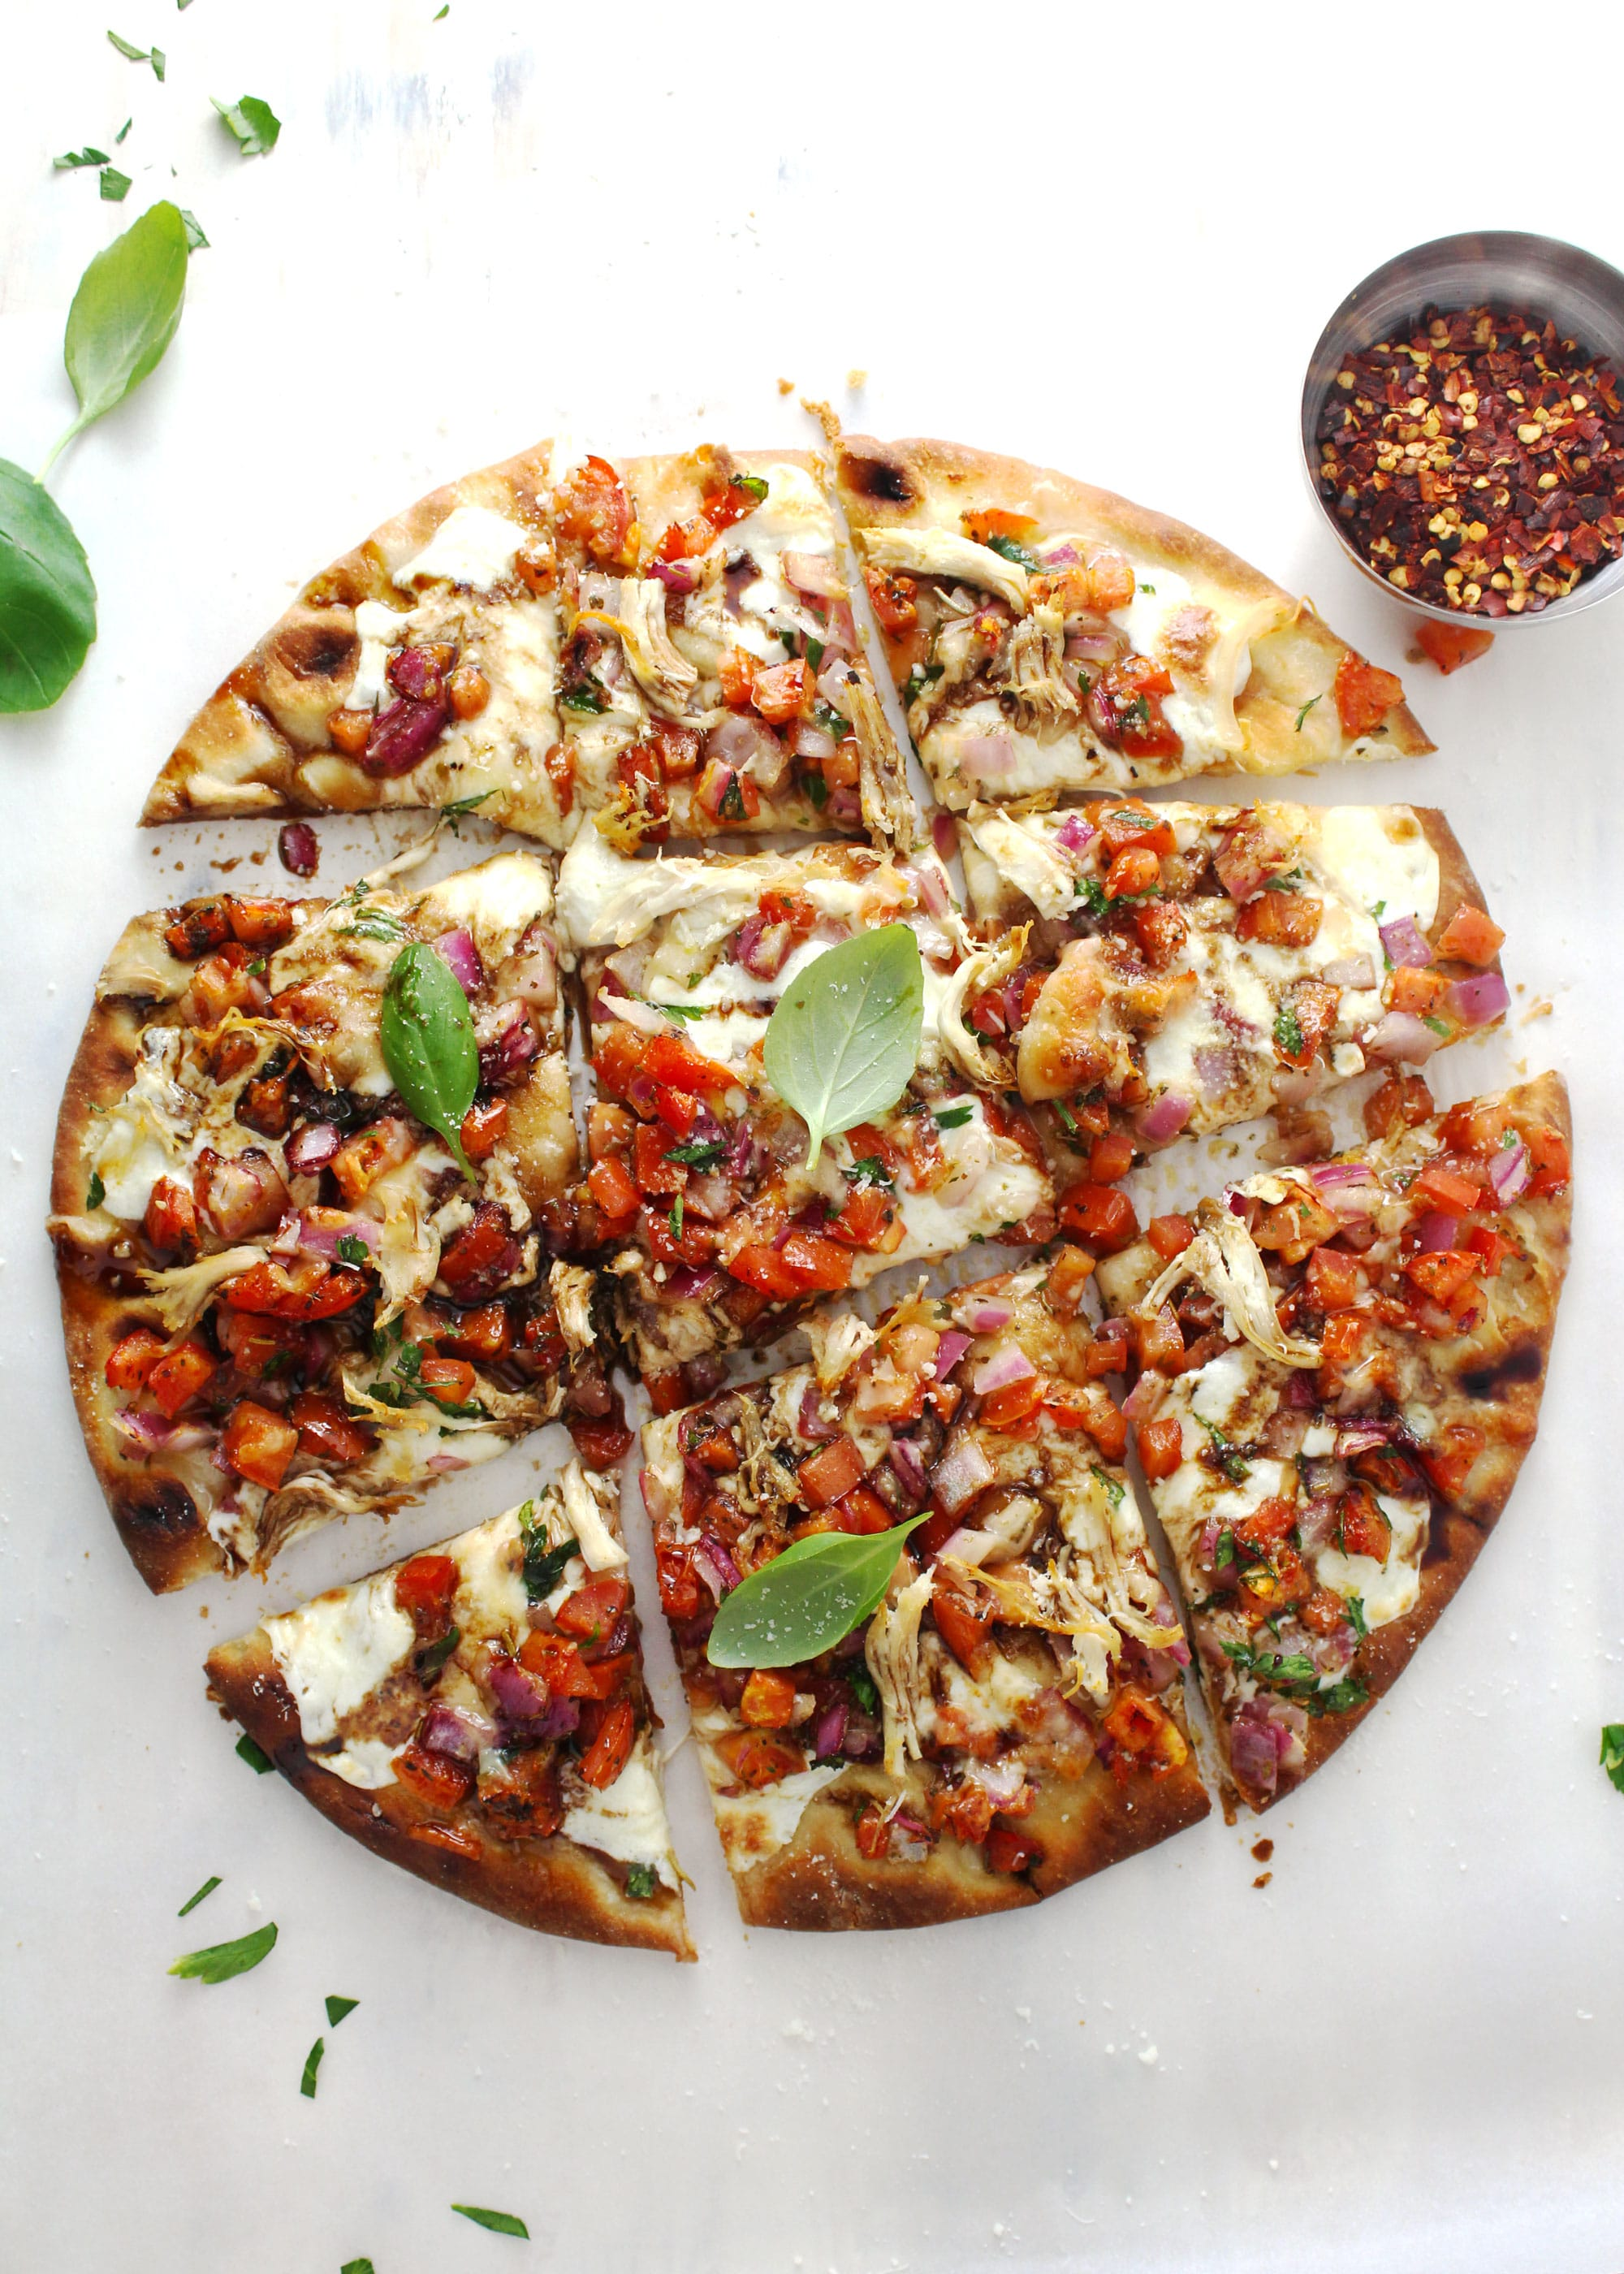 Bruschetta pizza topped with chicken and basil leave on a white surface.